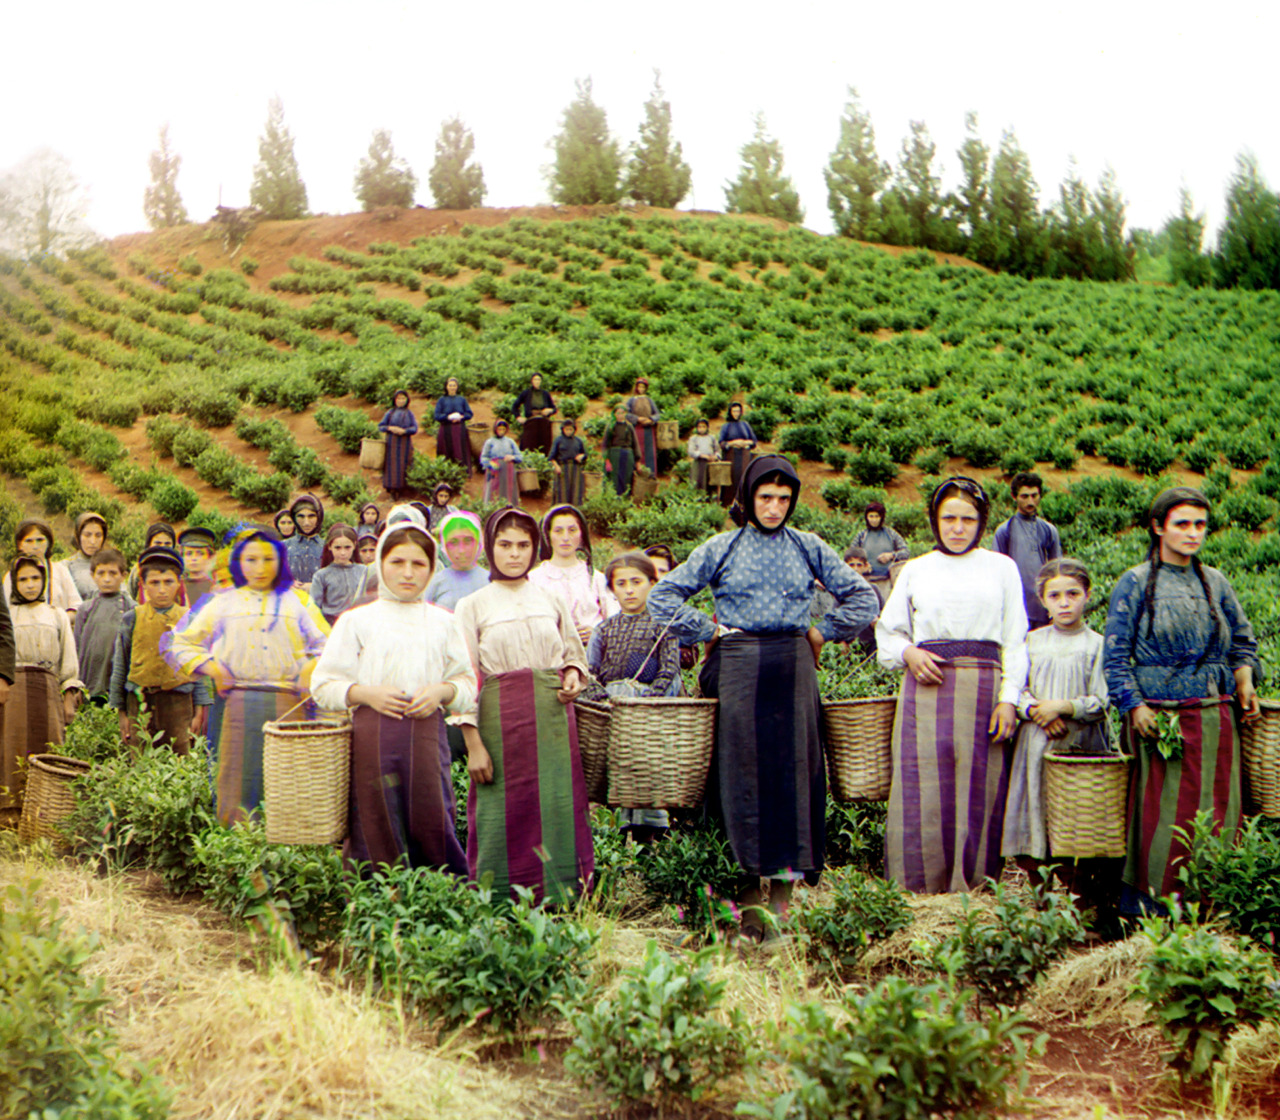 Original Description: Group of workers harvesting tea. Greek women. Taken between 1905 and 1915. From the Sergei Mikhailovich Prokudin-Gorskii Collection (Library of Congress).